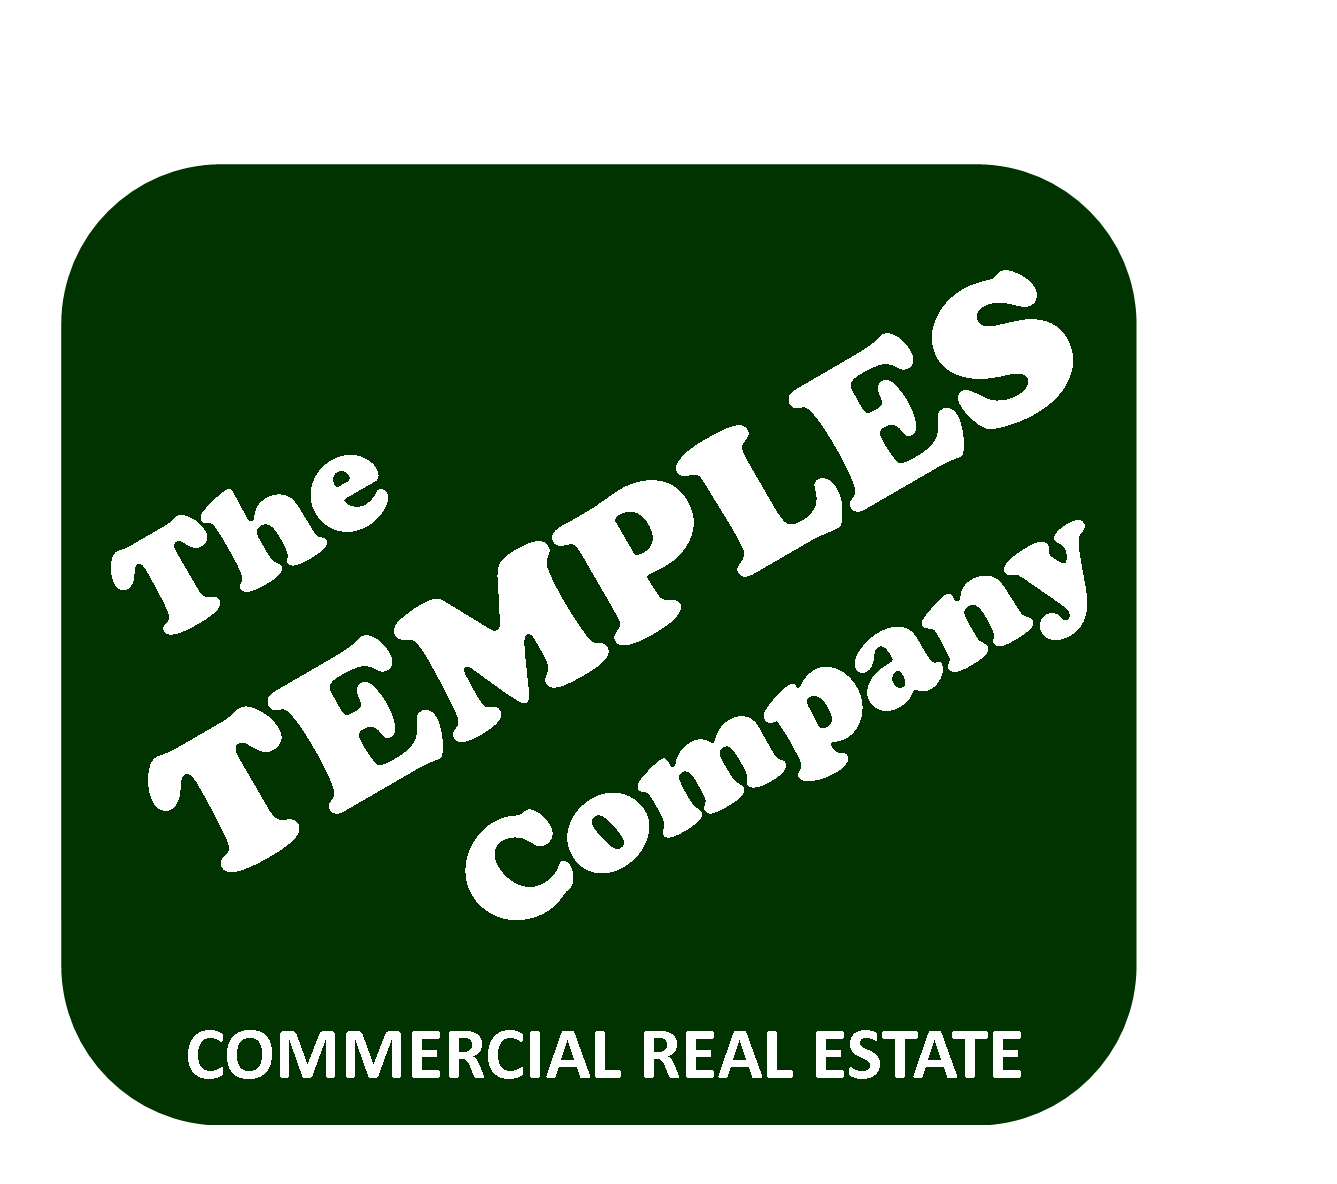 The Temples Company